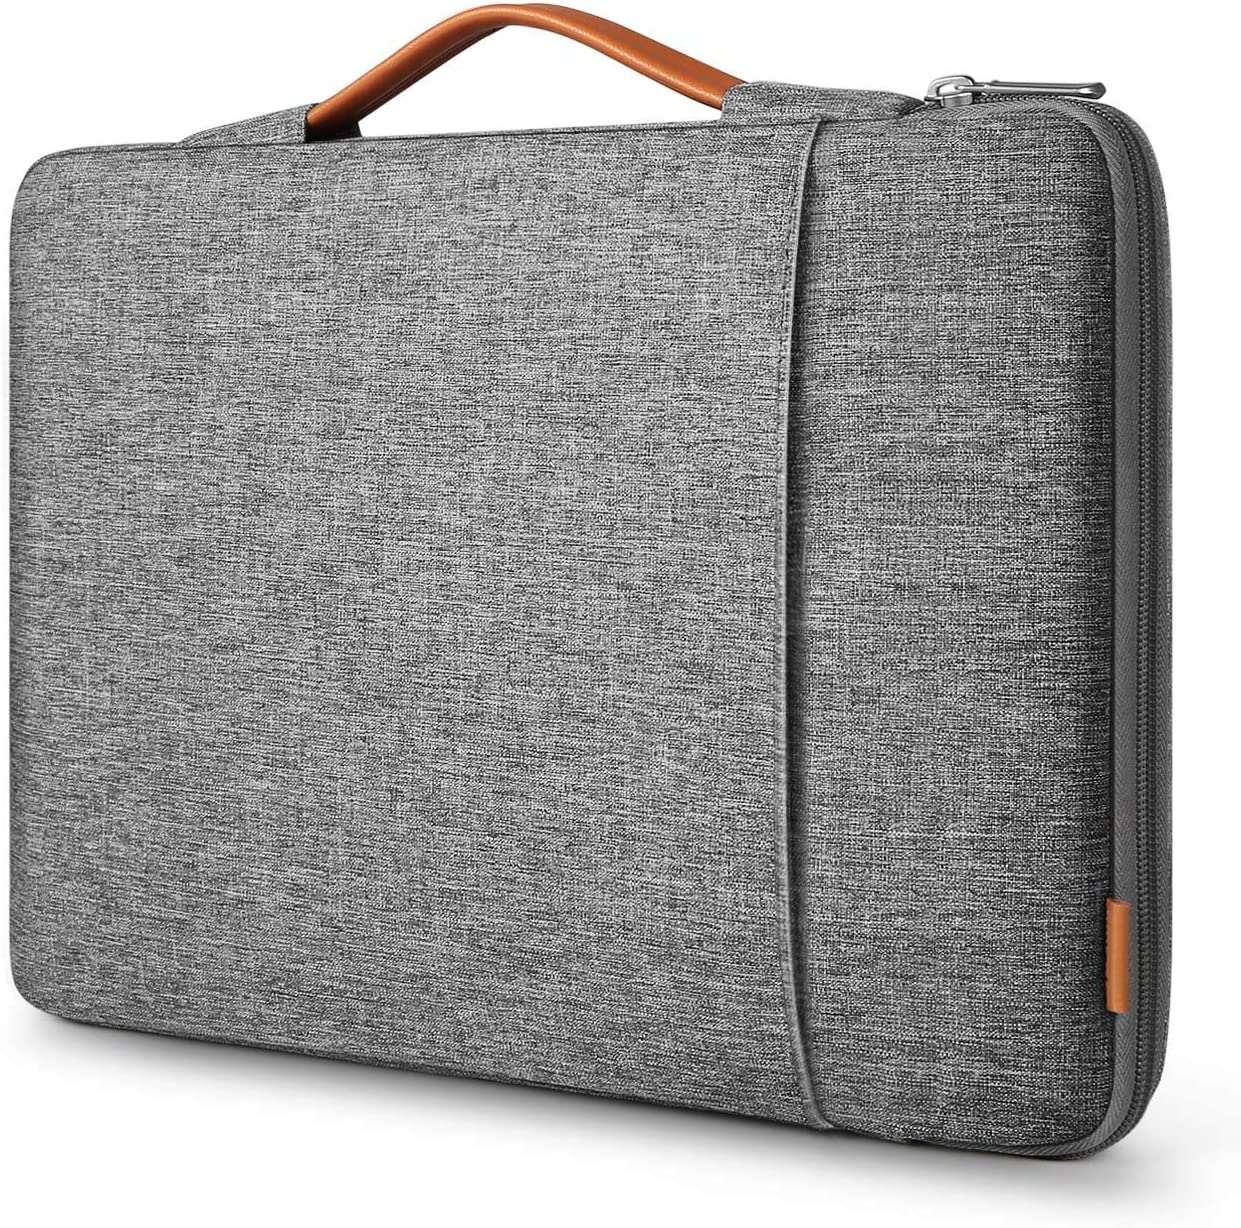 Inateck 13-13.5 Inch 360 Protective Laptop Sleeve Carrying Case Bag Briefcase Compatible with 13 inch MacBook Pro 2012-2020, MacBook Air 2010-2020, 12.3 Surface Pro X/7/6/5/4/3, 13.5 Surface Laptop